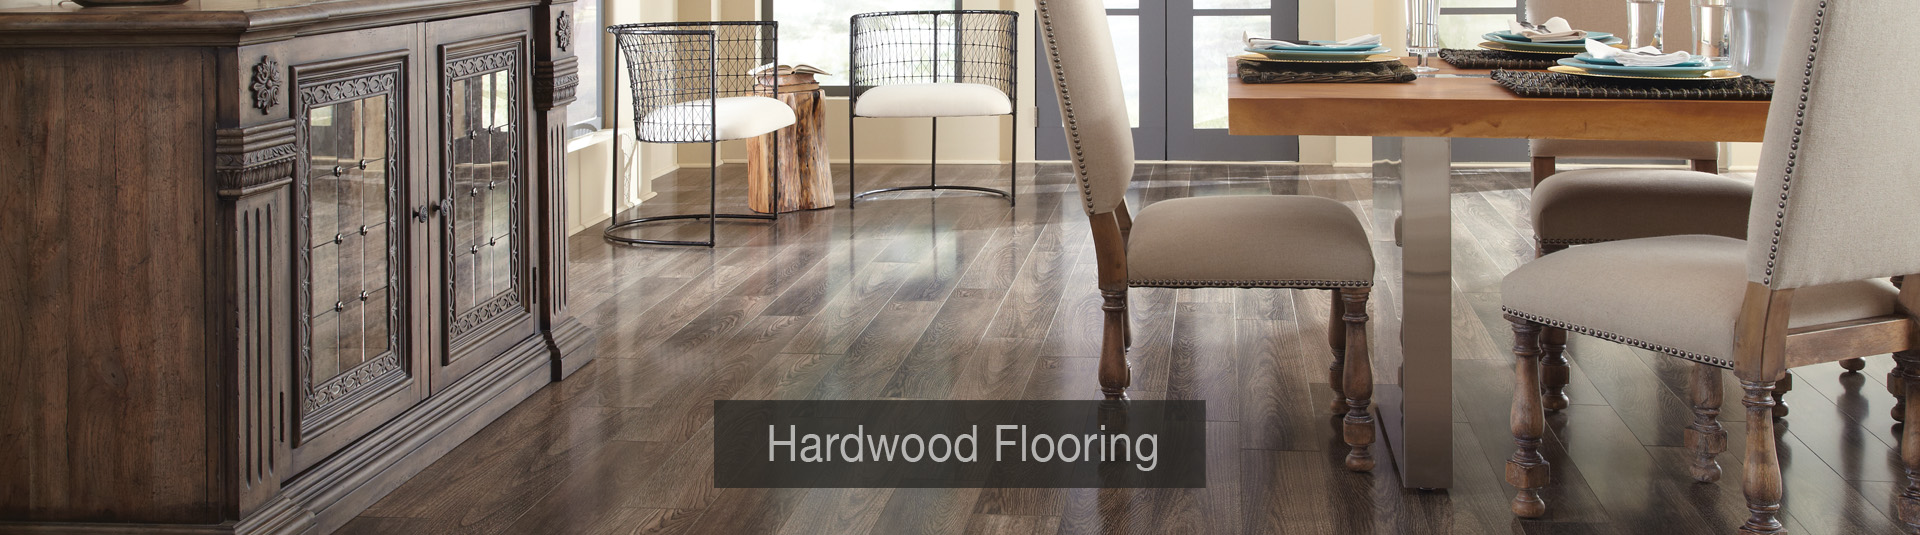 Flooring Hardwood Tile Carpet Benson Stone Rockford Il